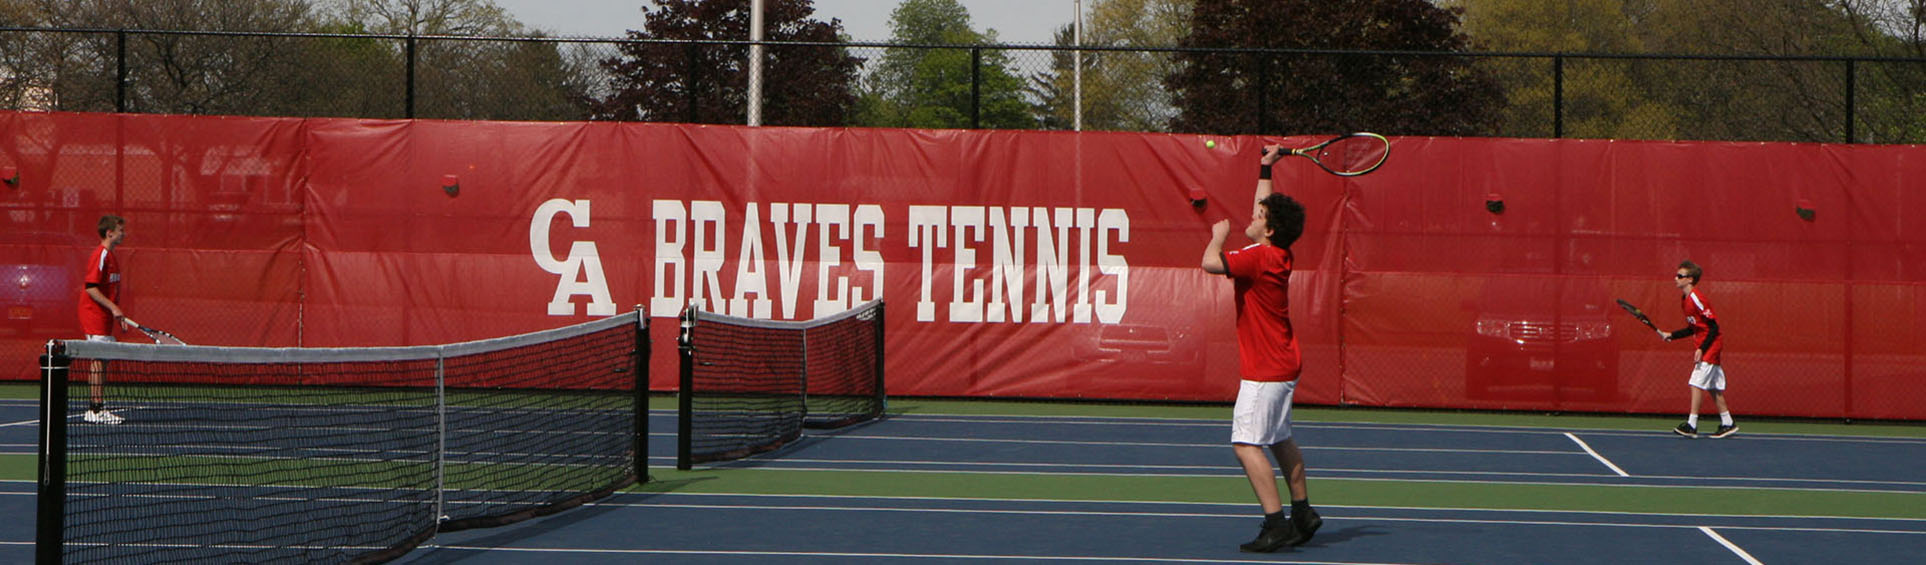 3 tennis players practicing on courts with Braves Tennis banner in background